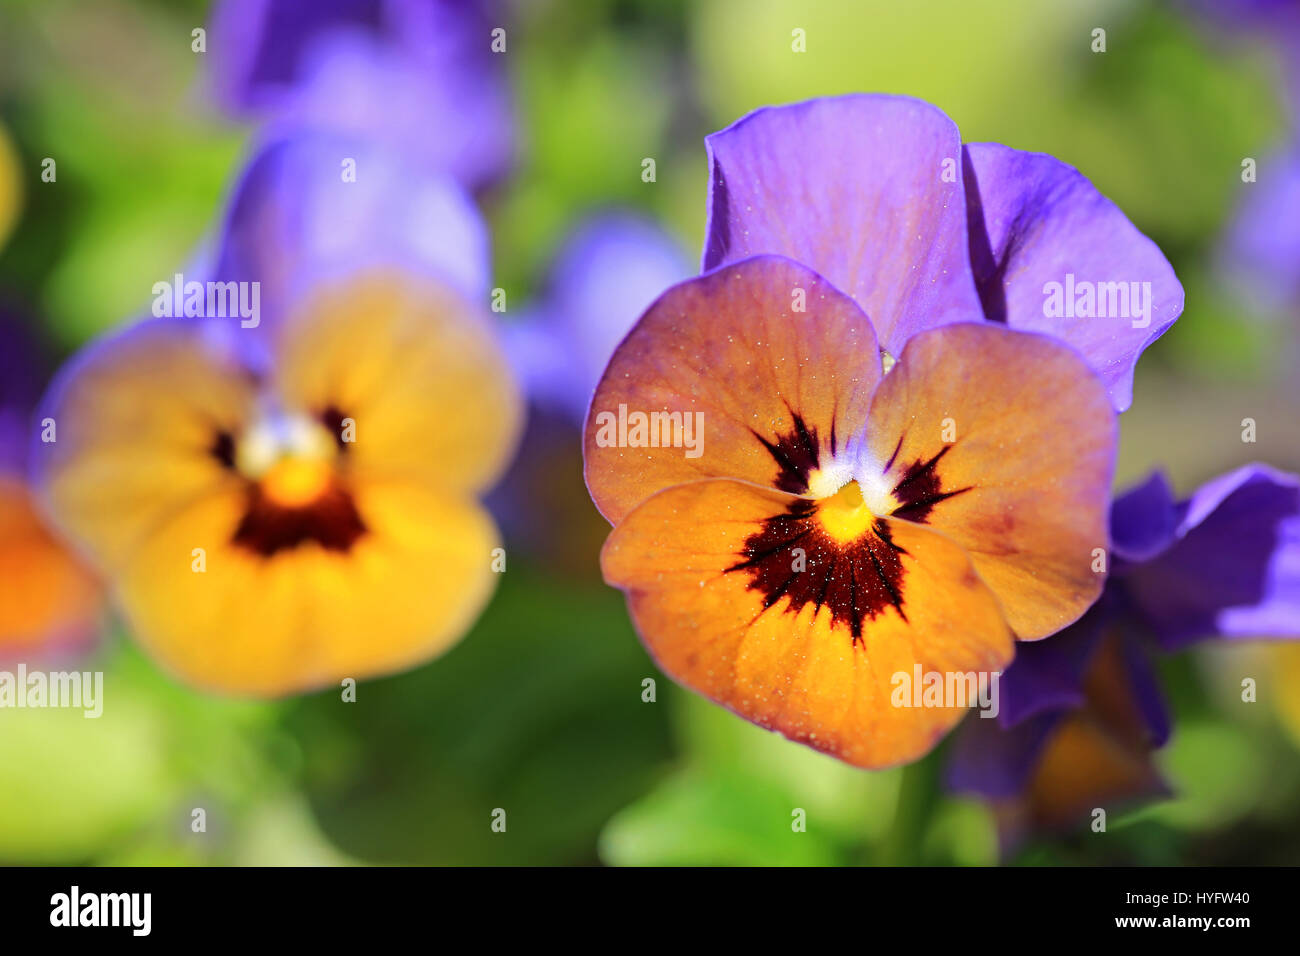 A colorful Pansy flower growing in the garden at spring, another flower on the left blurred for effect, shallow - Stock Image